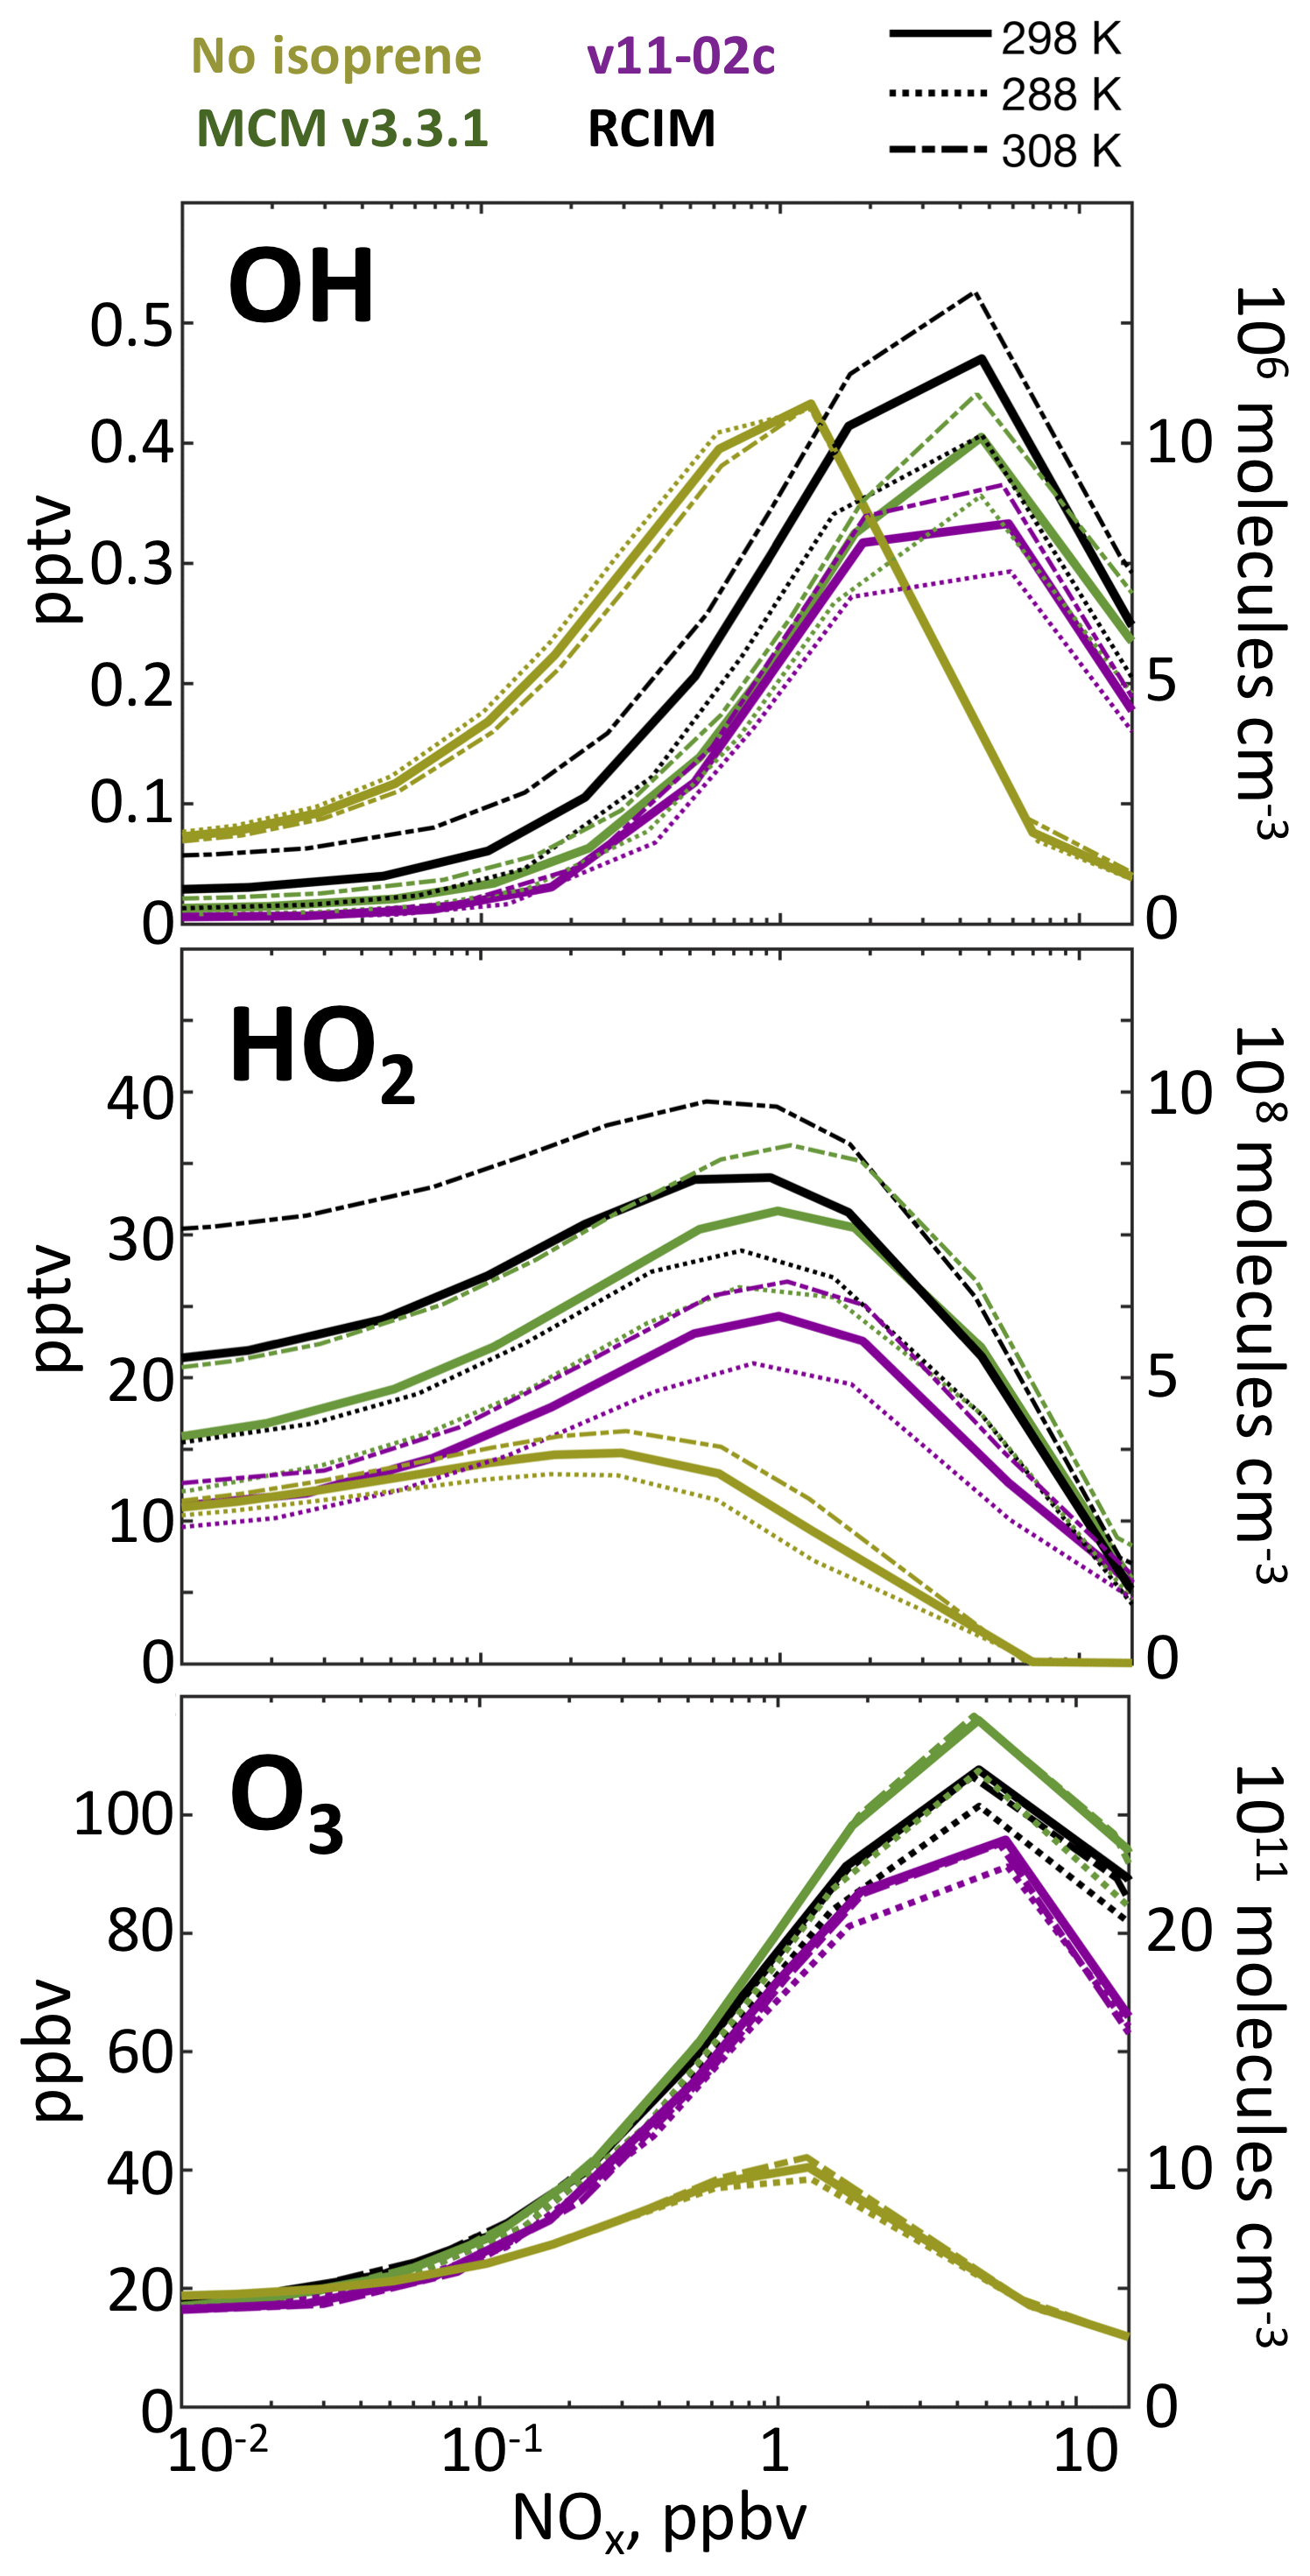 ACP - A new model mechanism for atmospheric oxidation of isoprene